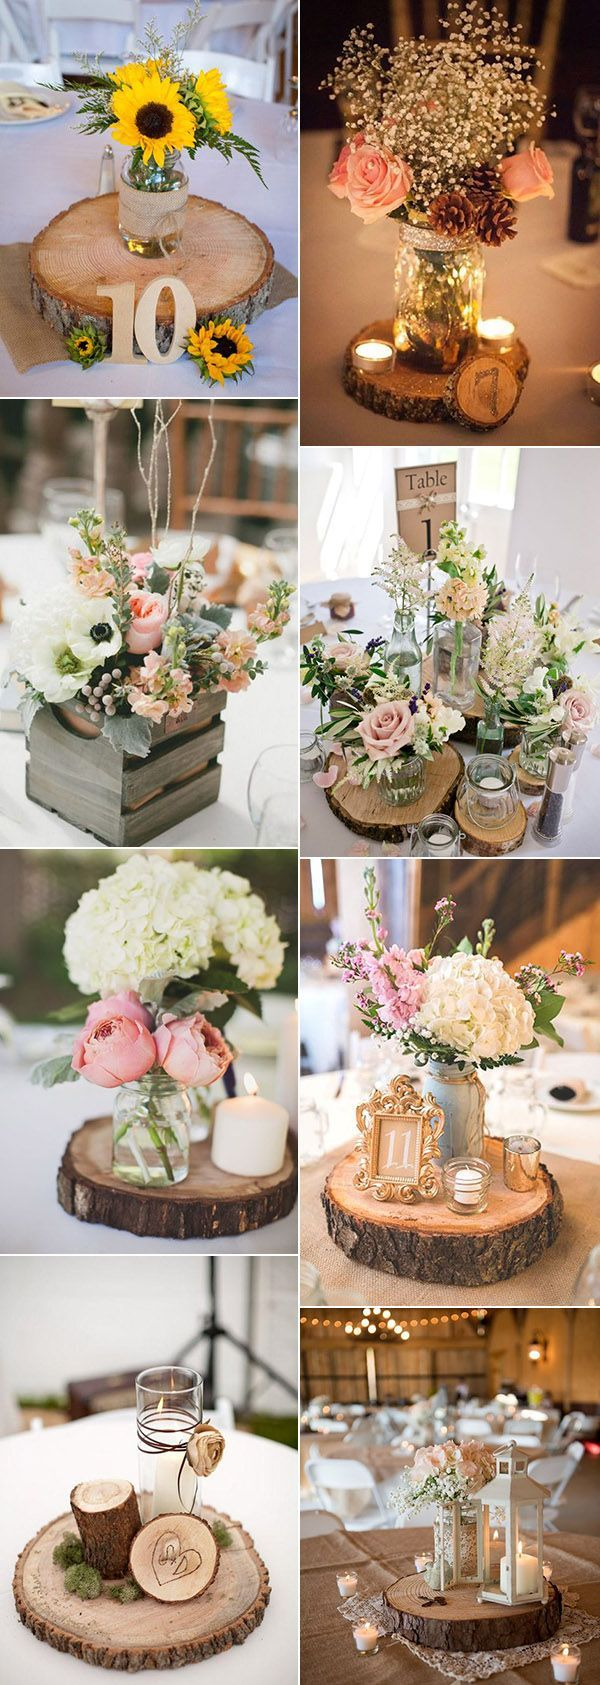 Best 10+ Rustic Wedding Centerpieces Ideas On Pinterest | Tree Centrepiece  Wedding, Wood Wedding Centerpieces And Wedding Rustic